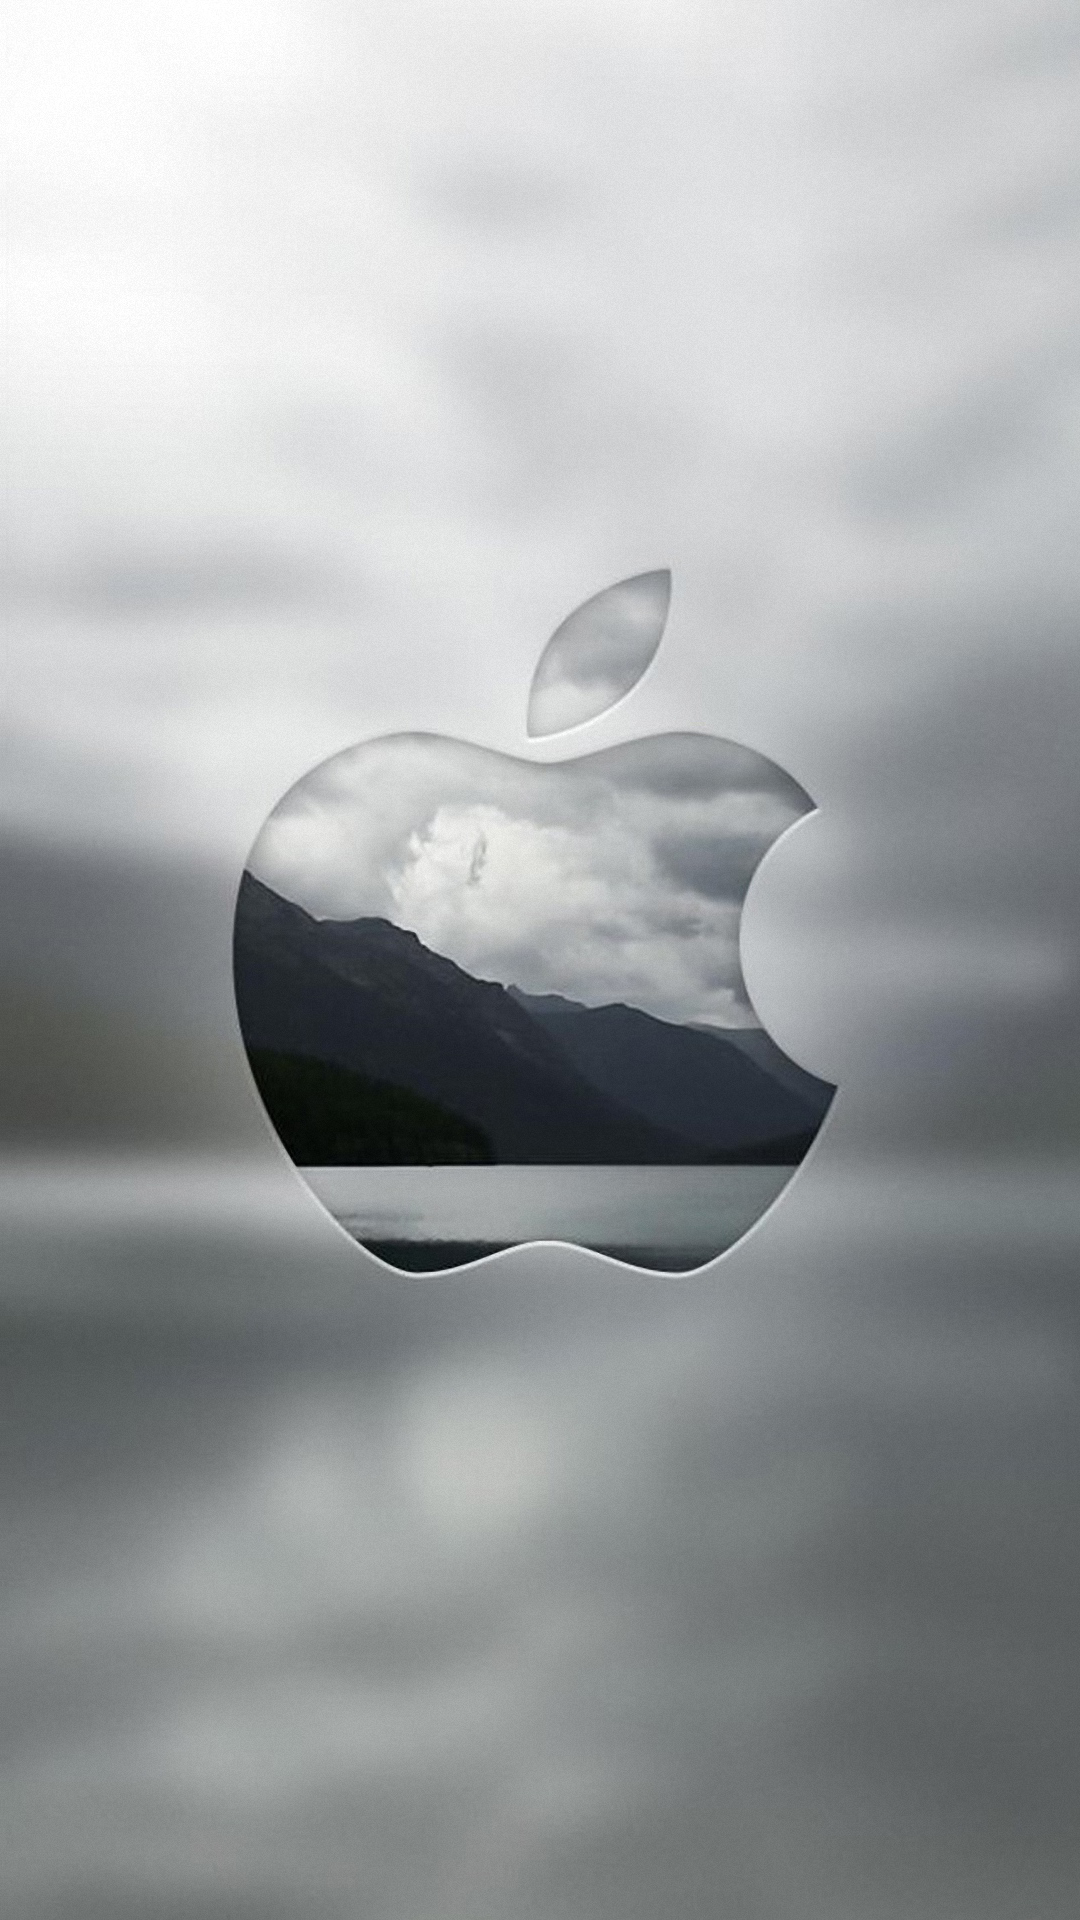 free hd apple tech iphone wallpaper for download 0304